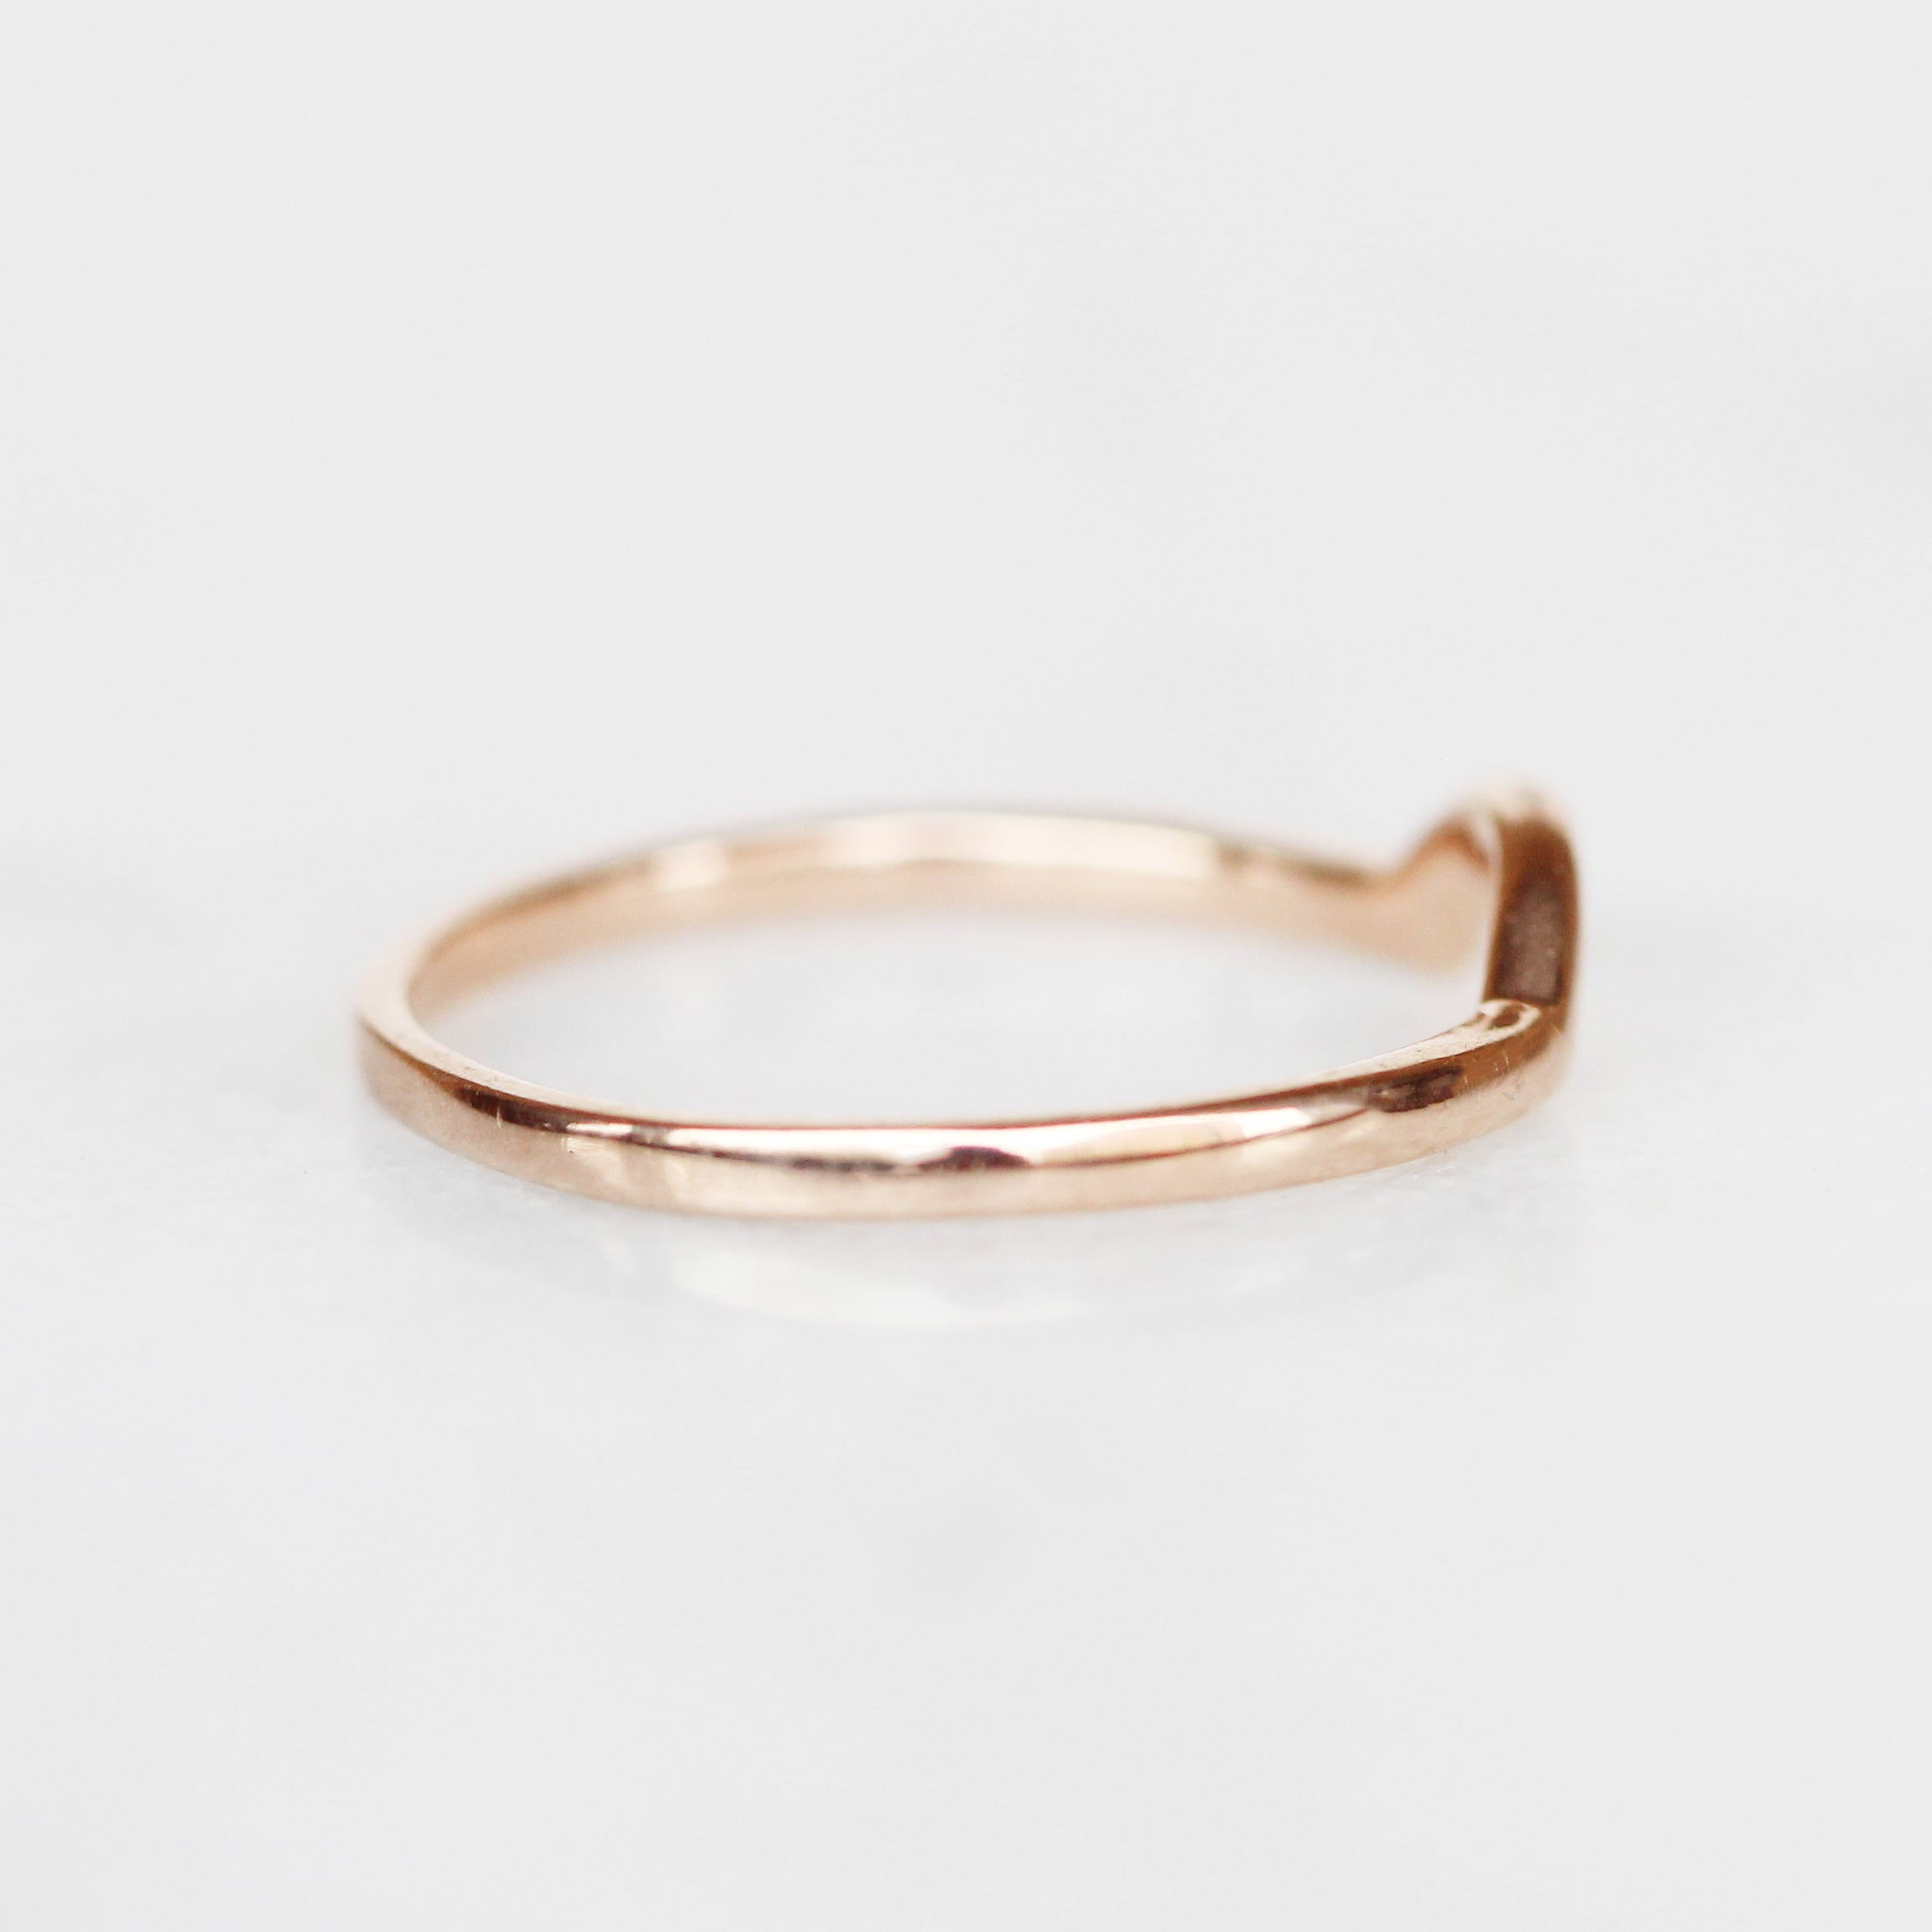 Archer wedding band - customized contour band - 14k gold of choice - Celestial Diamonds ® by Midwinter Co.